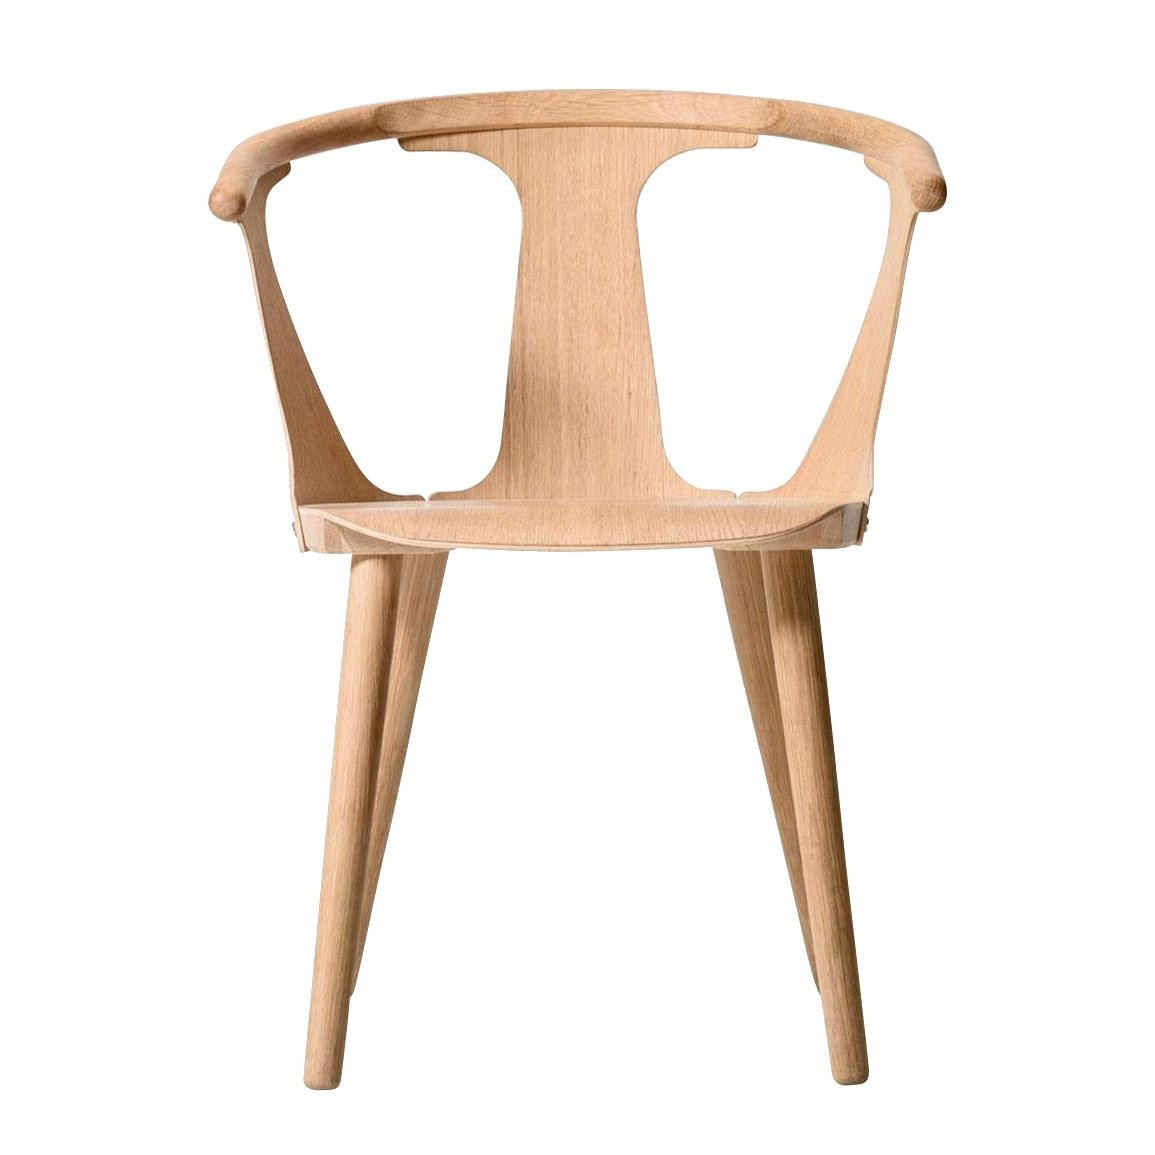 In Between In Chair In SK1 Between Chaise Chair Chaise SK1 43A5qRjL